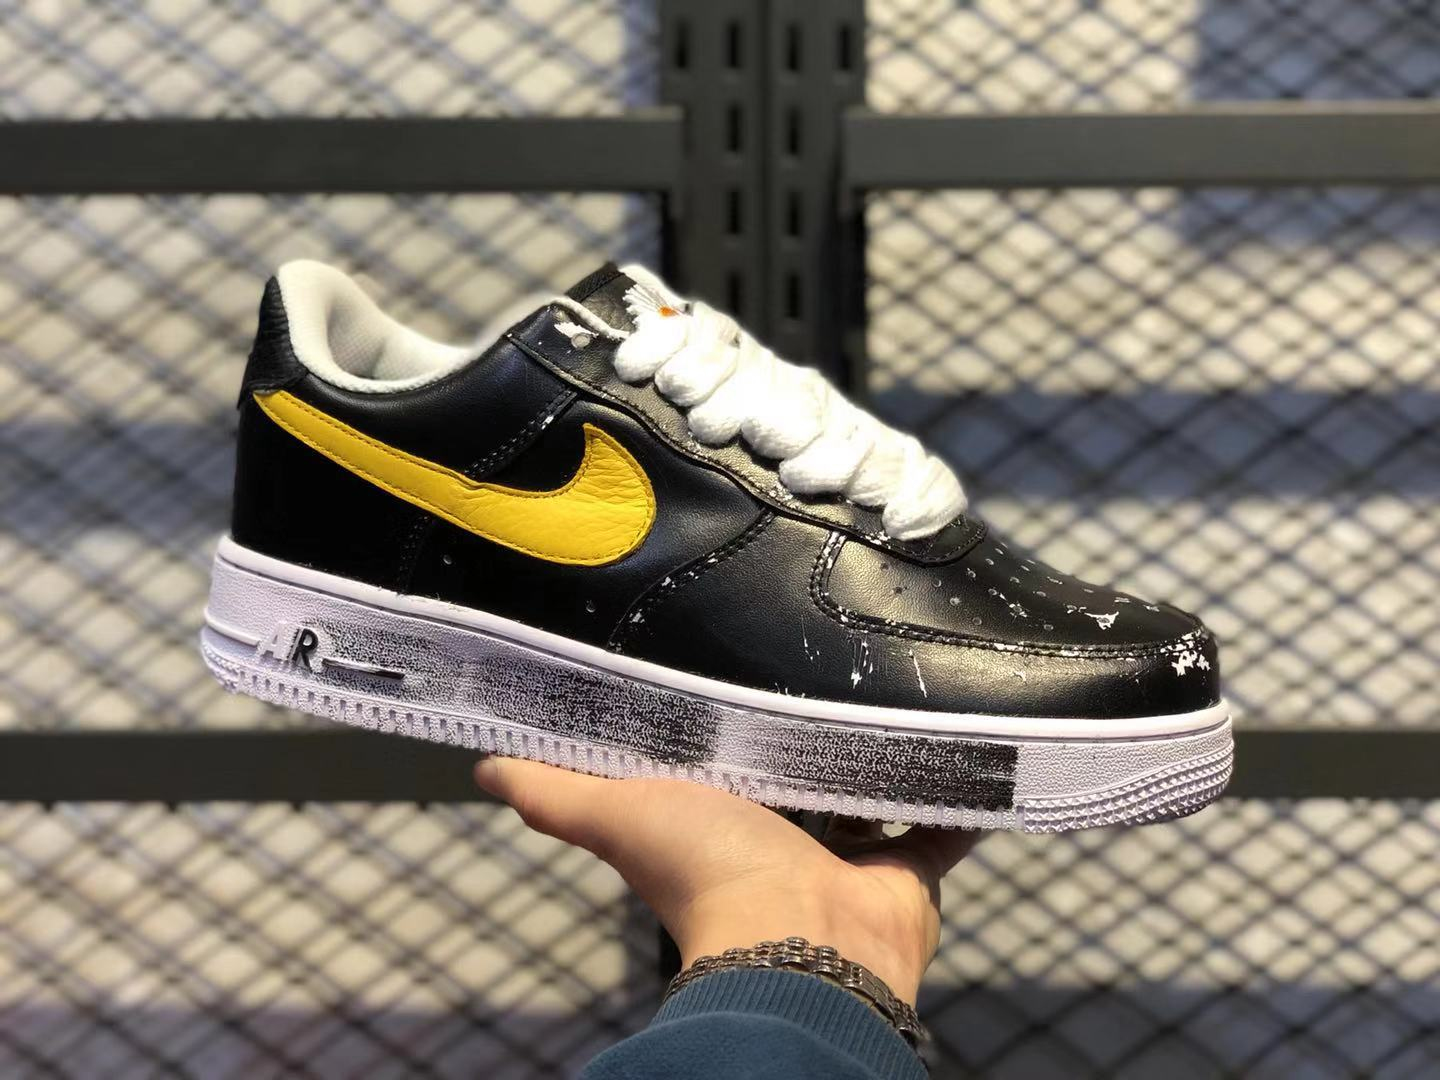 PEACEMINUSONE x Nike Air Force 1 Low Black/White-Yellow Leather Shoes In Stock